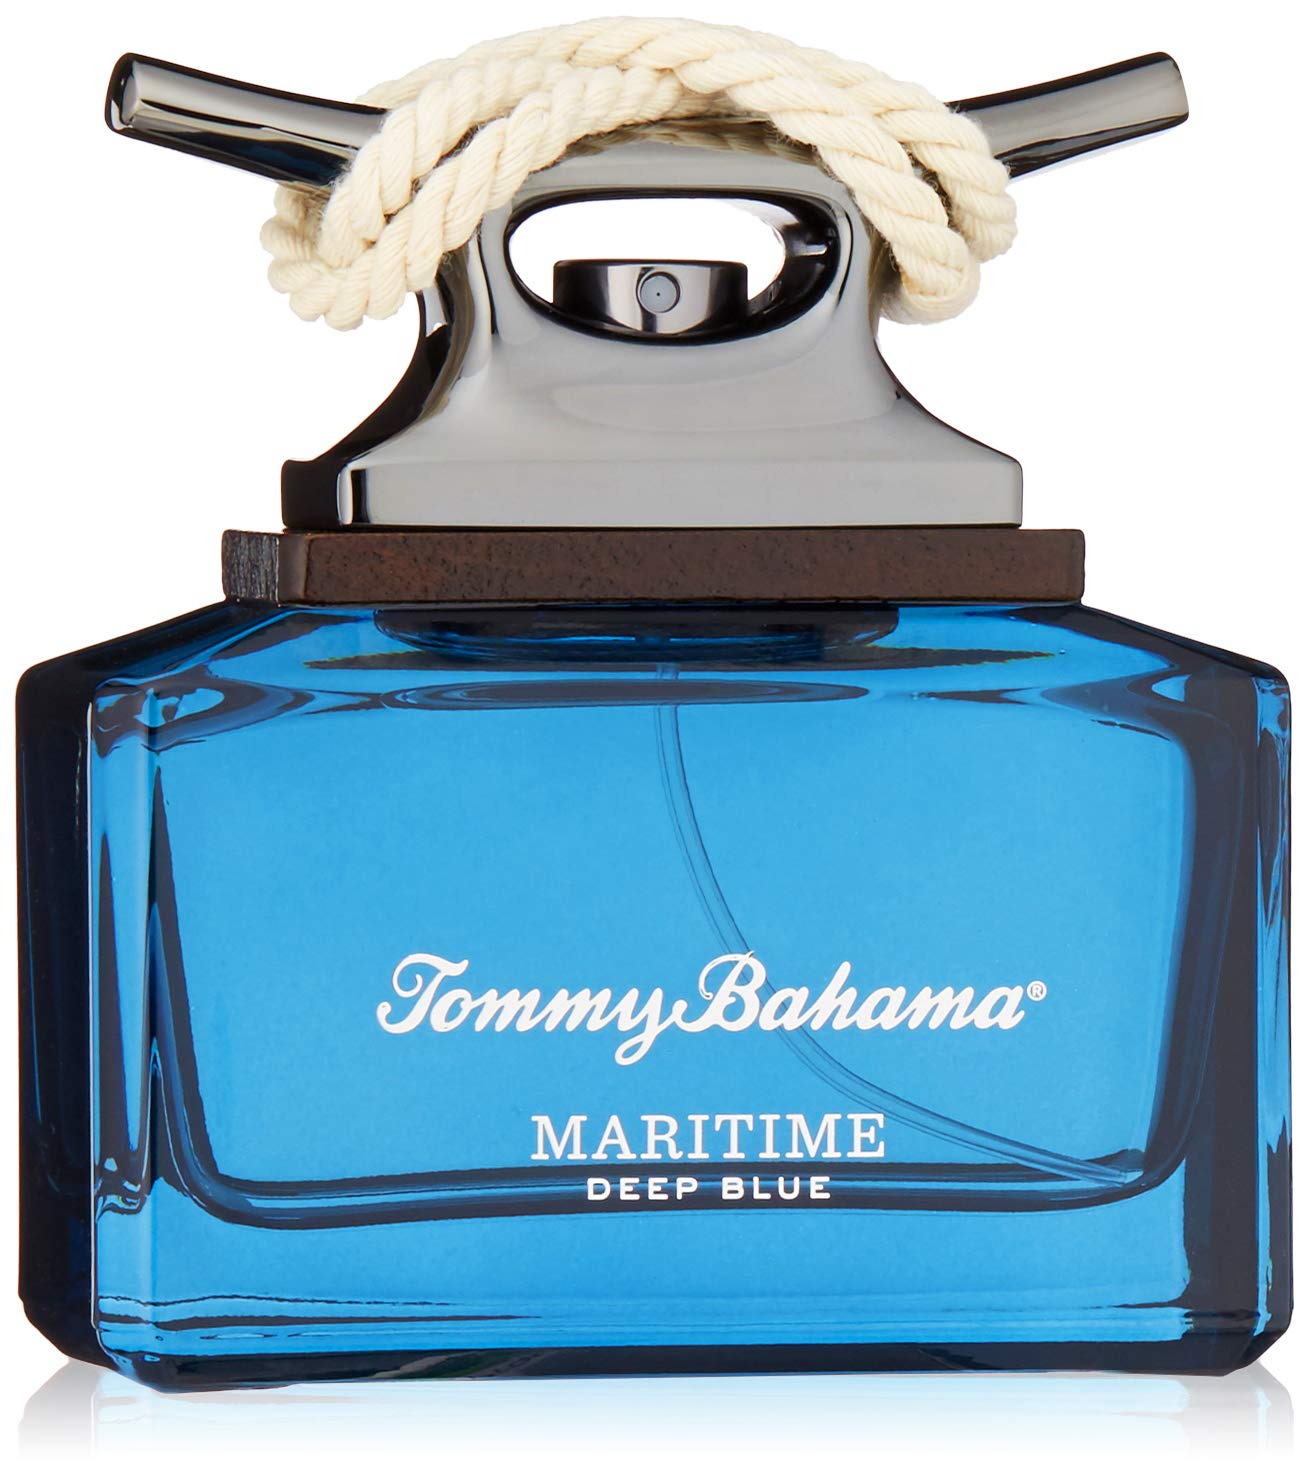 Tommy Bahama Maritime Deep Blue, 2.5 oz by Tommy Bahama